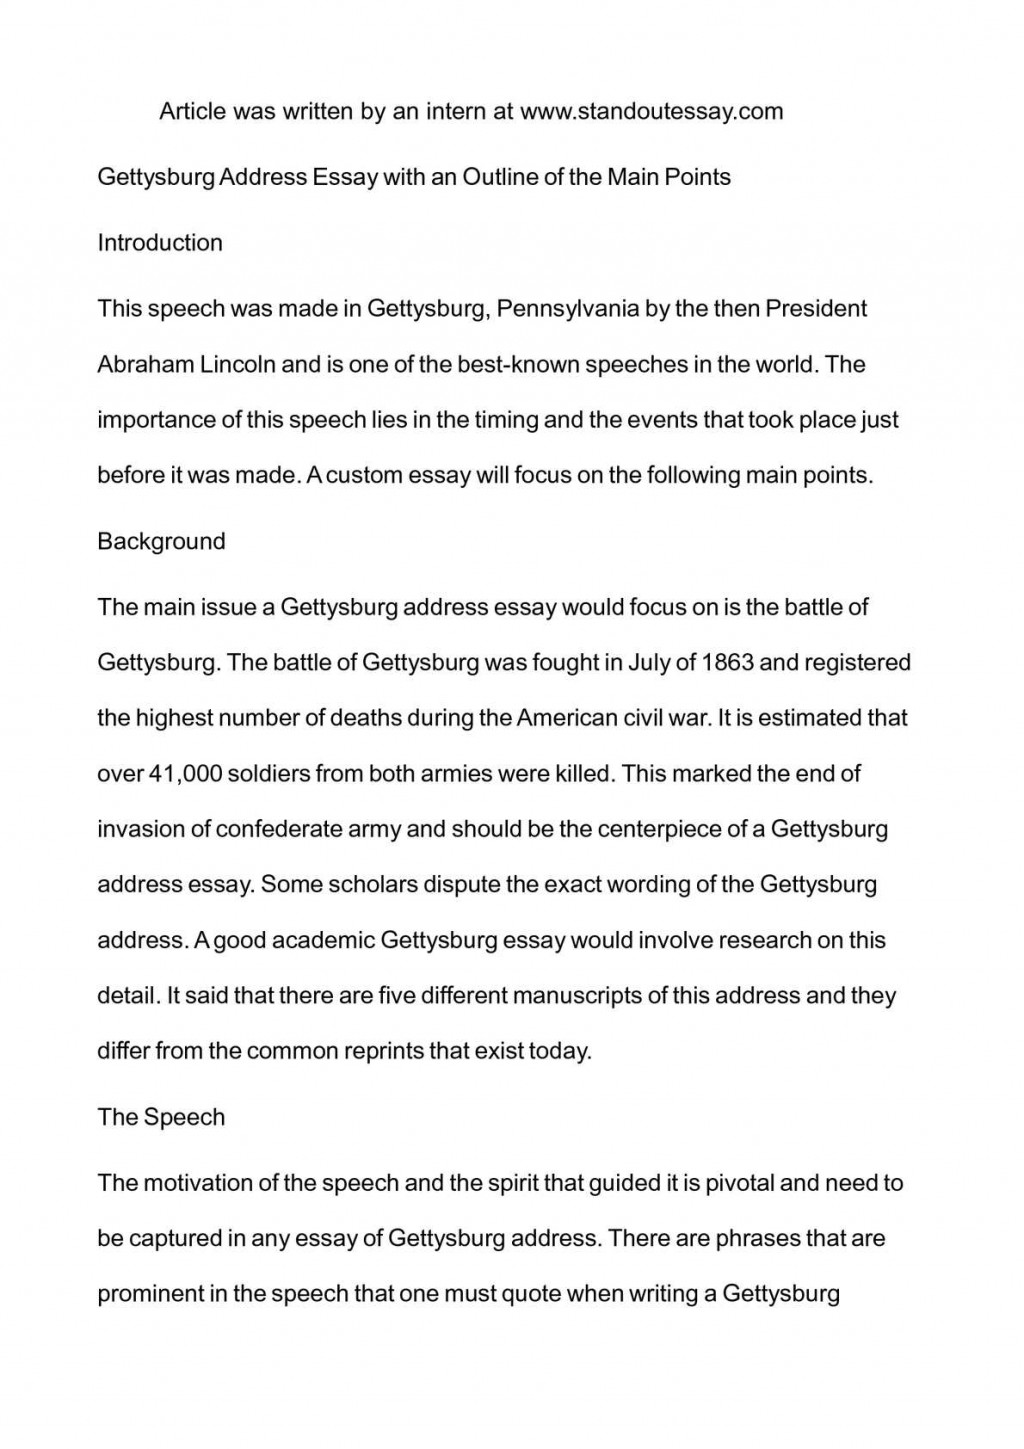 017 Proper Essay Form Example Formidable Paper Format Reflection Large